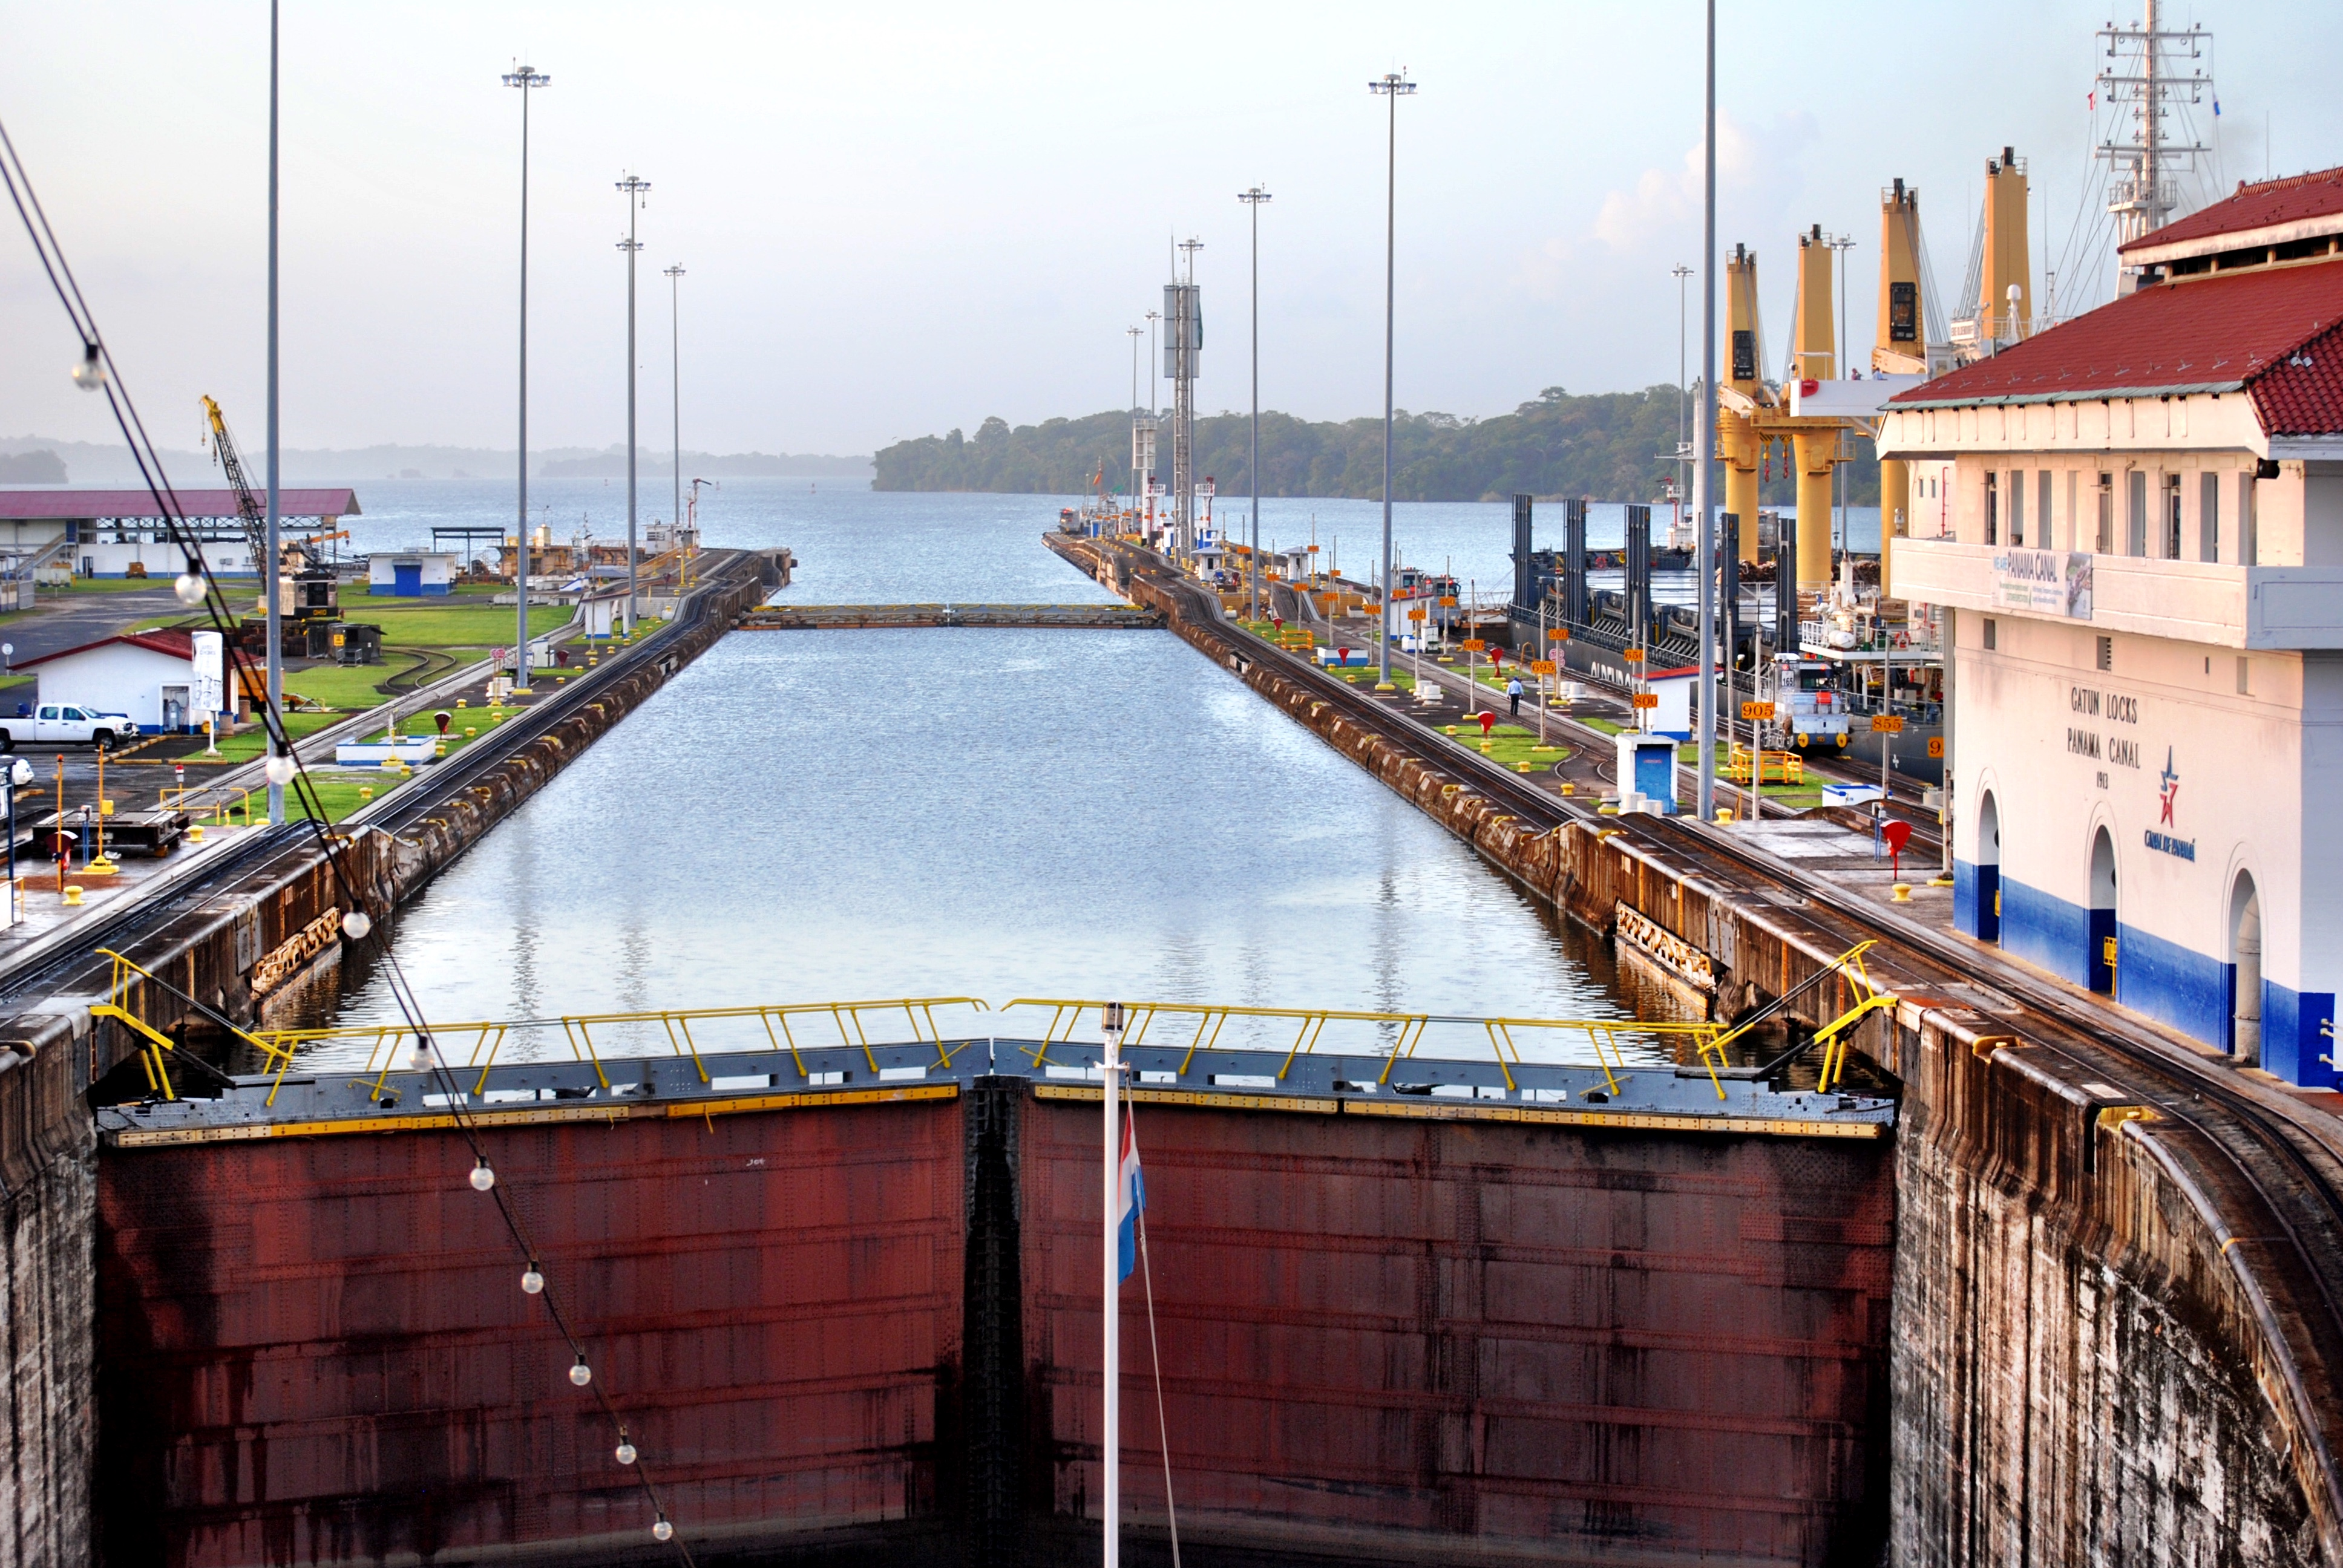 Traveling through the Panama Canal is a bucket list experience